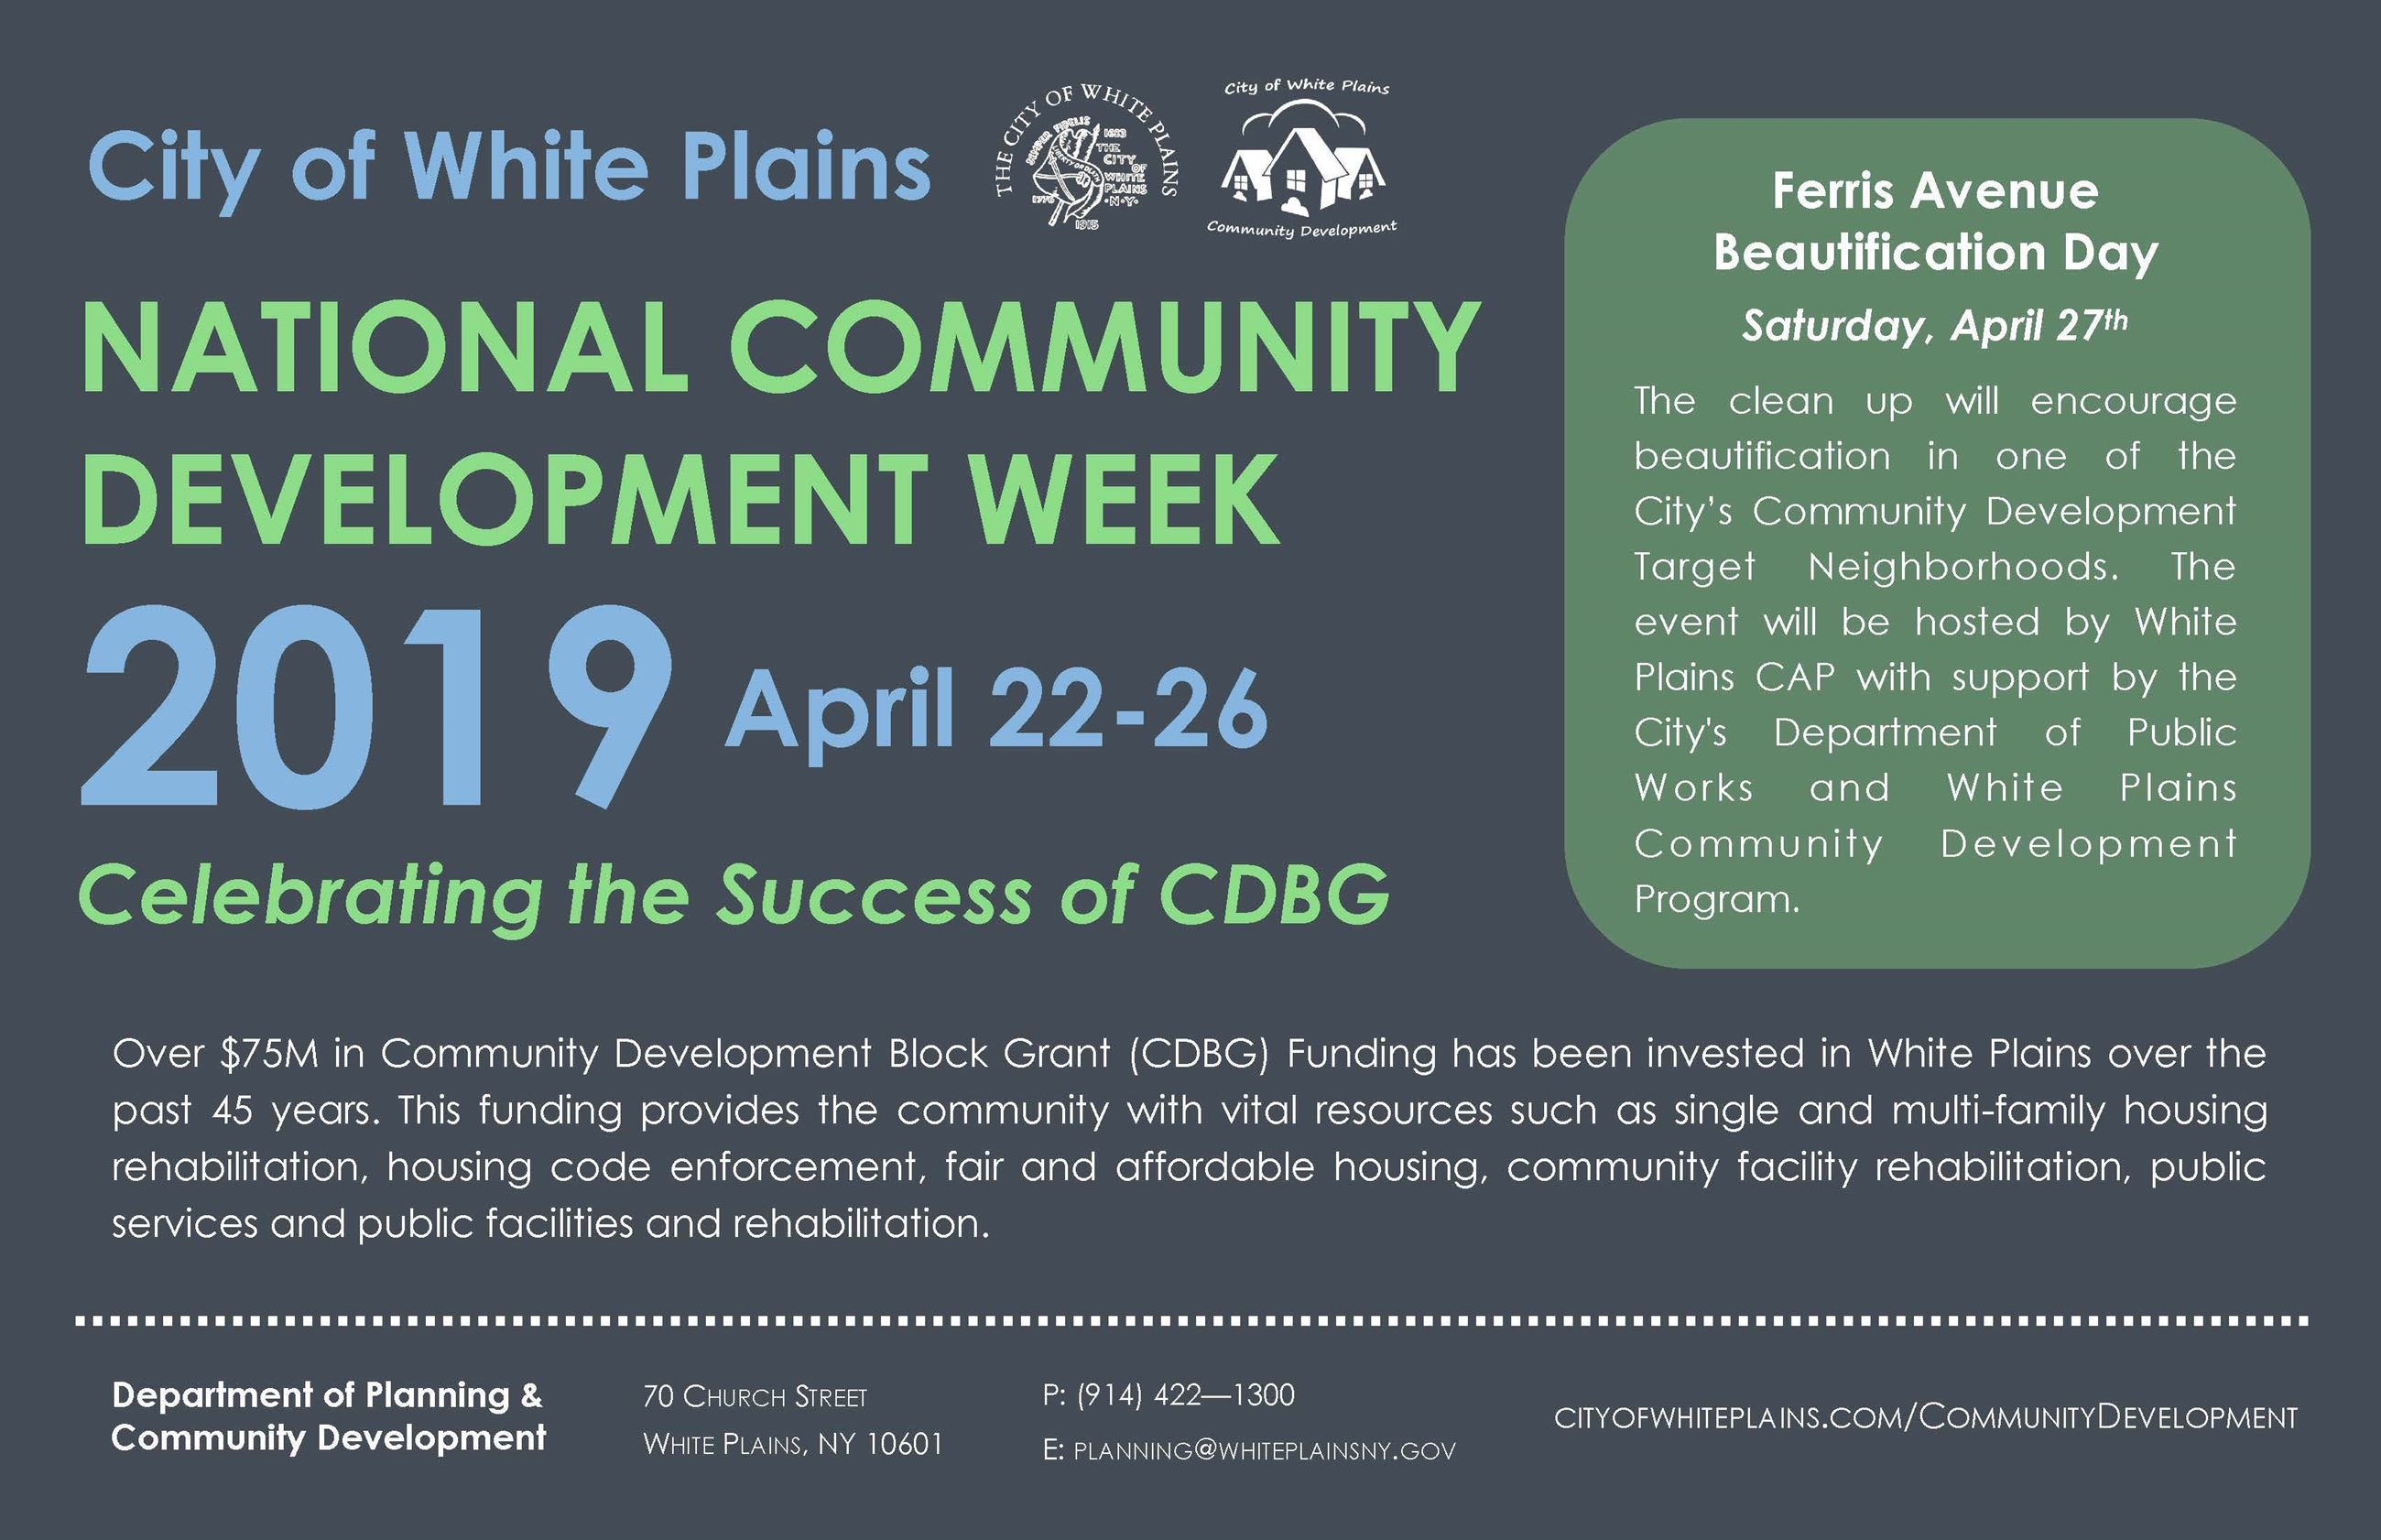 2019 Community Development Week